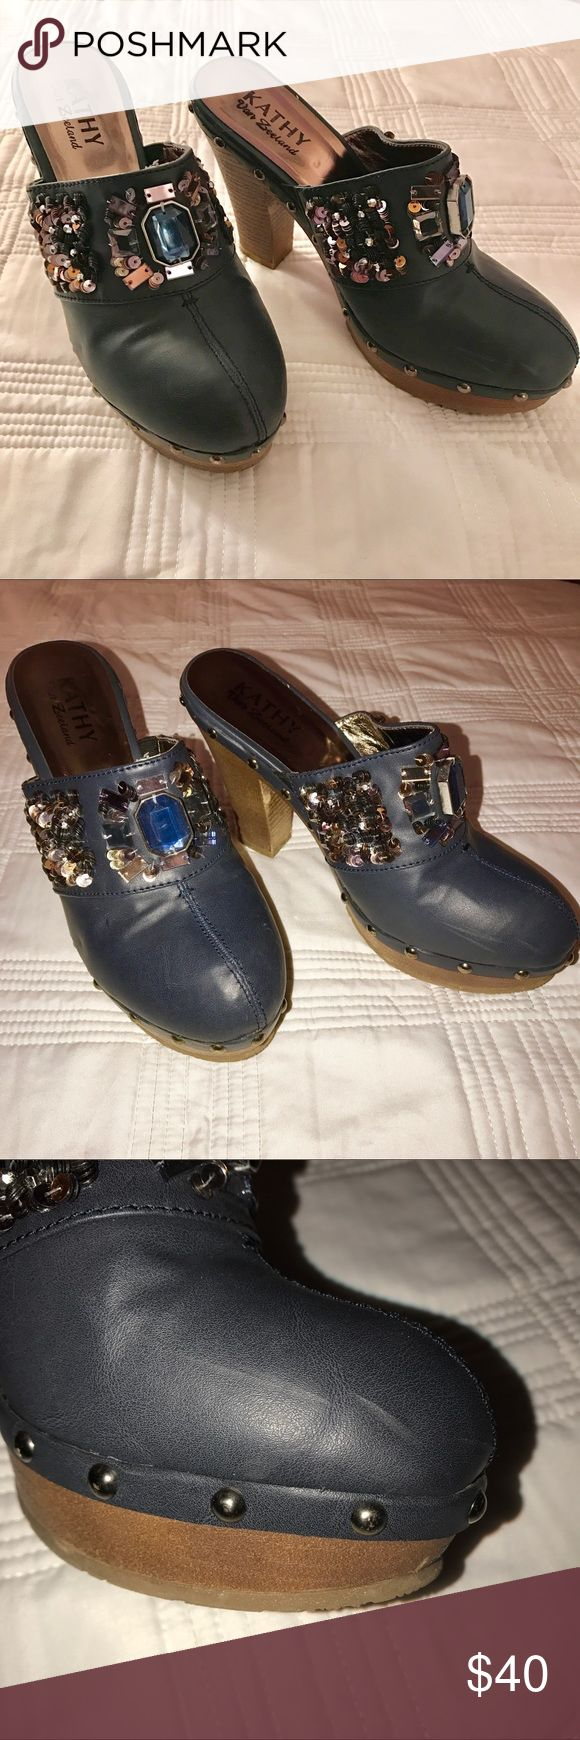 Kathy Van Zeeland Clogs Navy blue color! Only worn a few times. Minor flaws are shown in pictures. (Light scratches, normal wear signs on bottom and heel). Sequences and gems design. Tag says size 8 but fits like a size 7! Kathy Van Zeeland Shoes Mules & Clogs